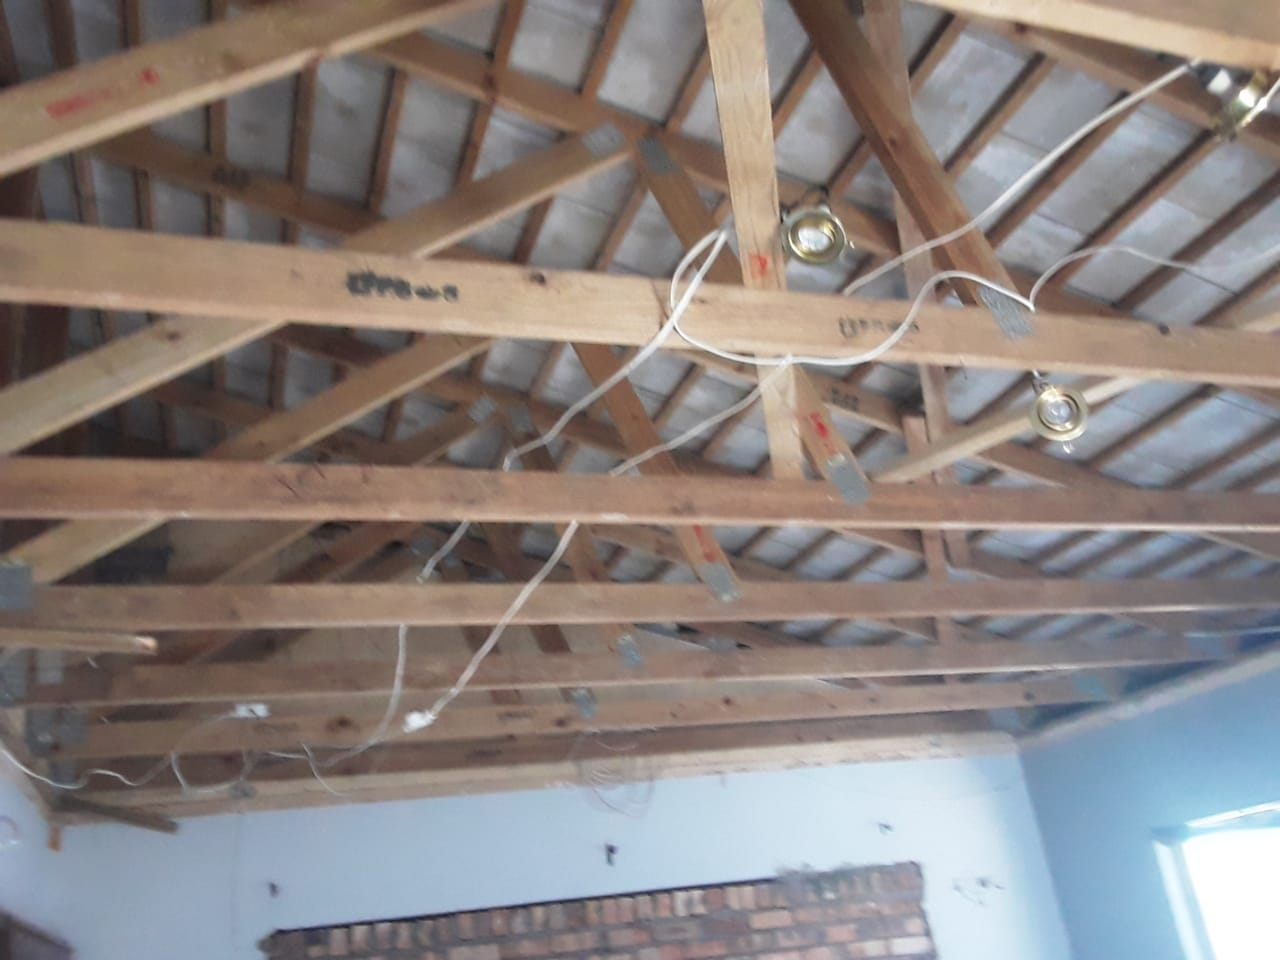 Roofing, roof trusses and tiles